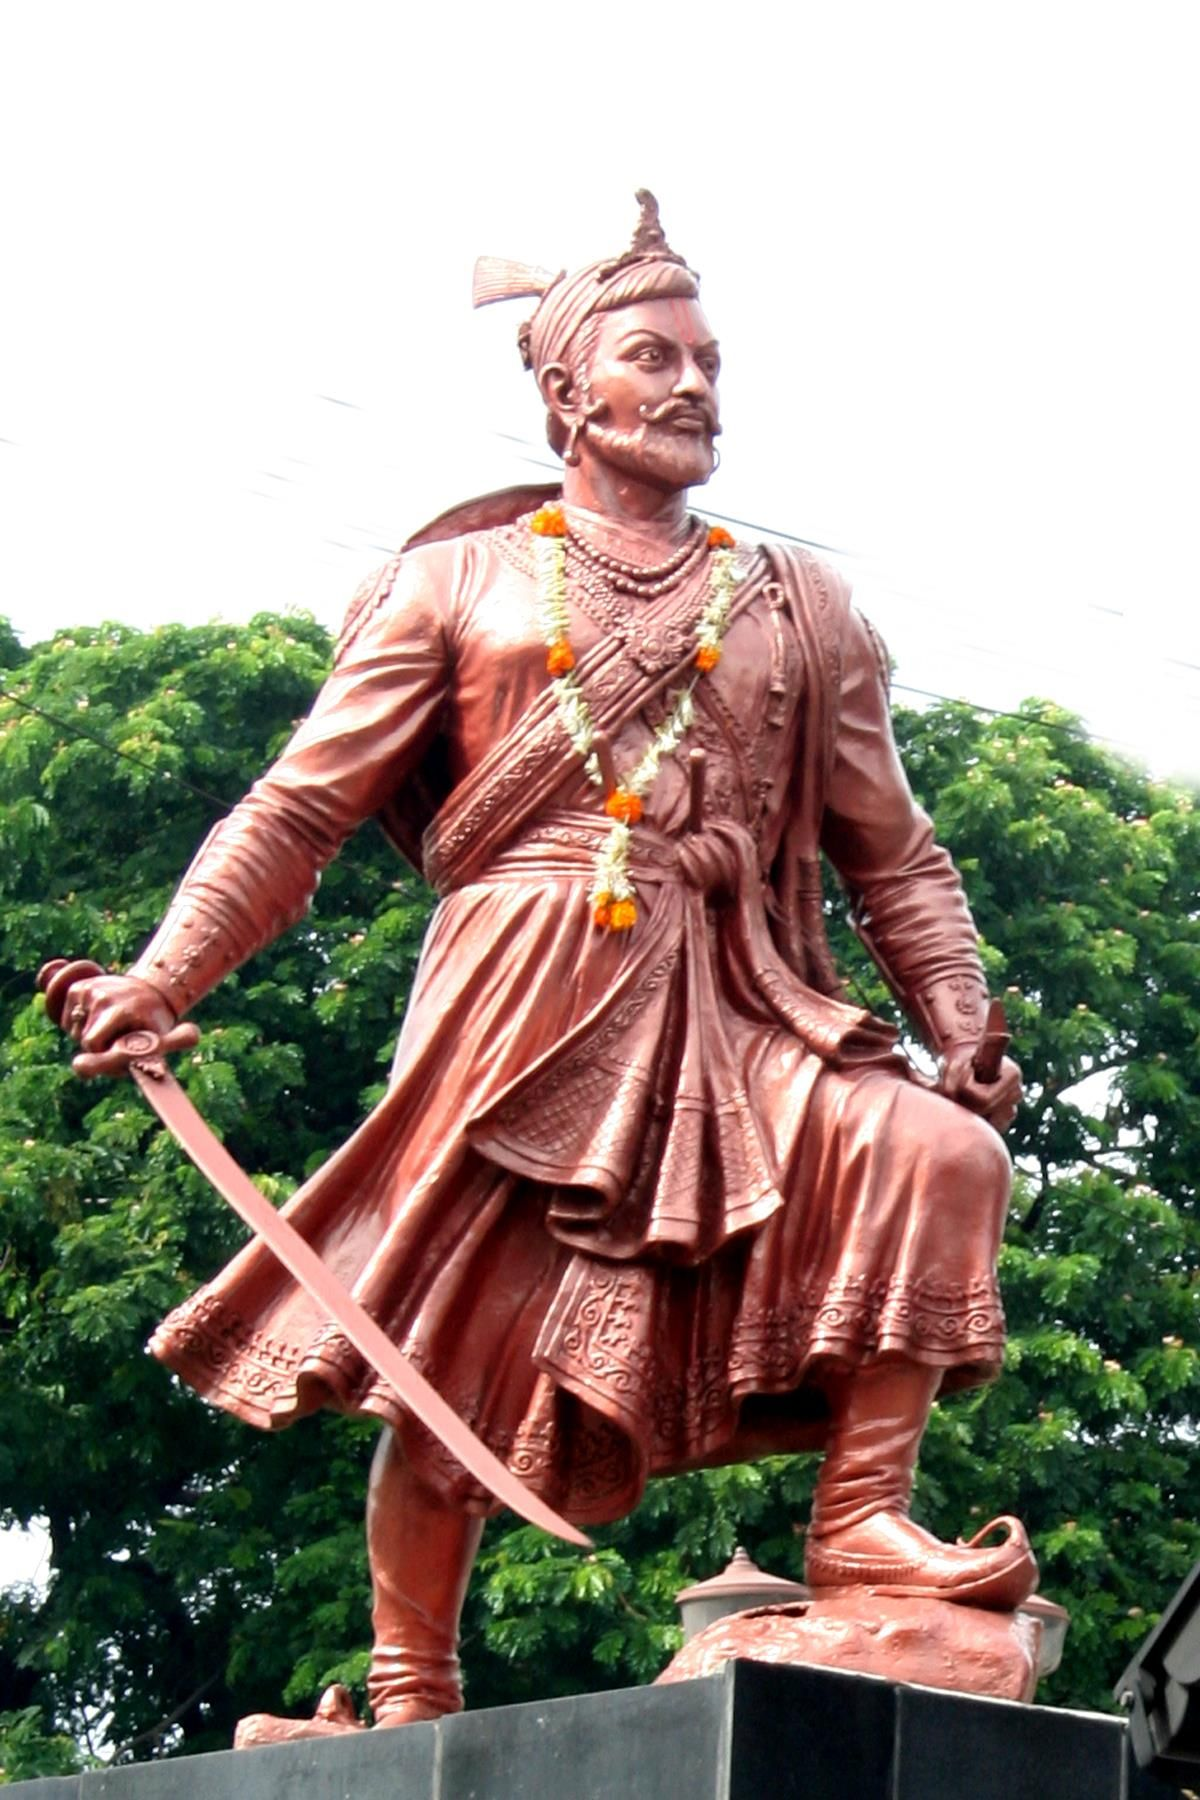 Raje Shivaji Maharaj Wallpaper Hd Full Size Download - Sambhaji Maharaj , HD Wallpaper & Backgrounds